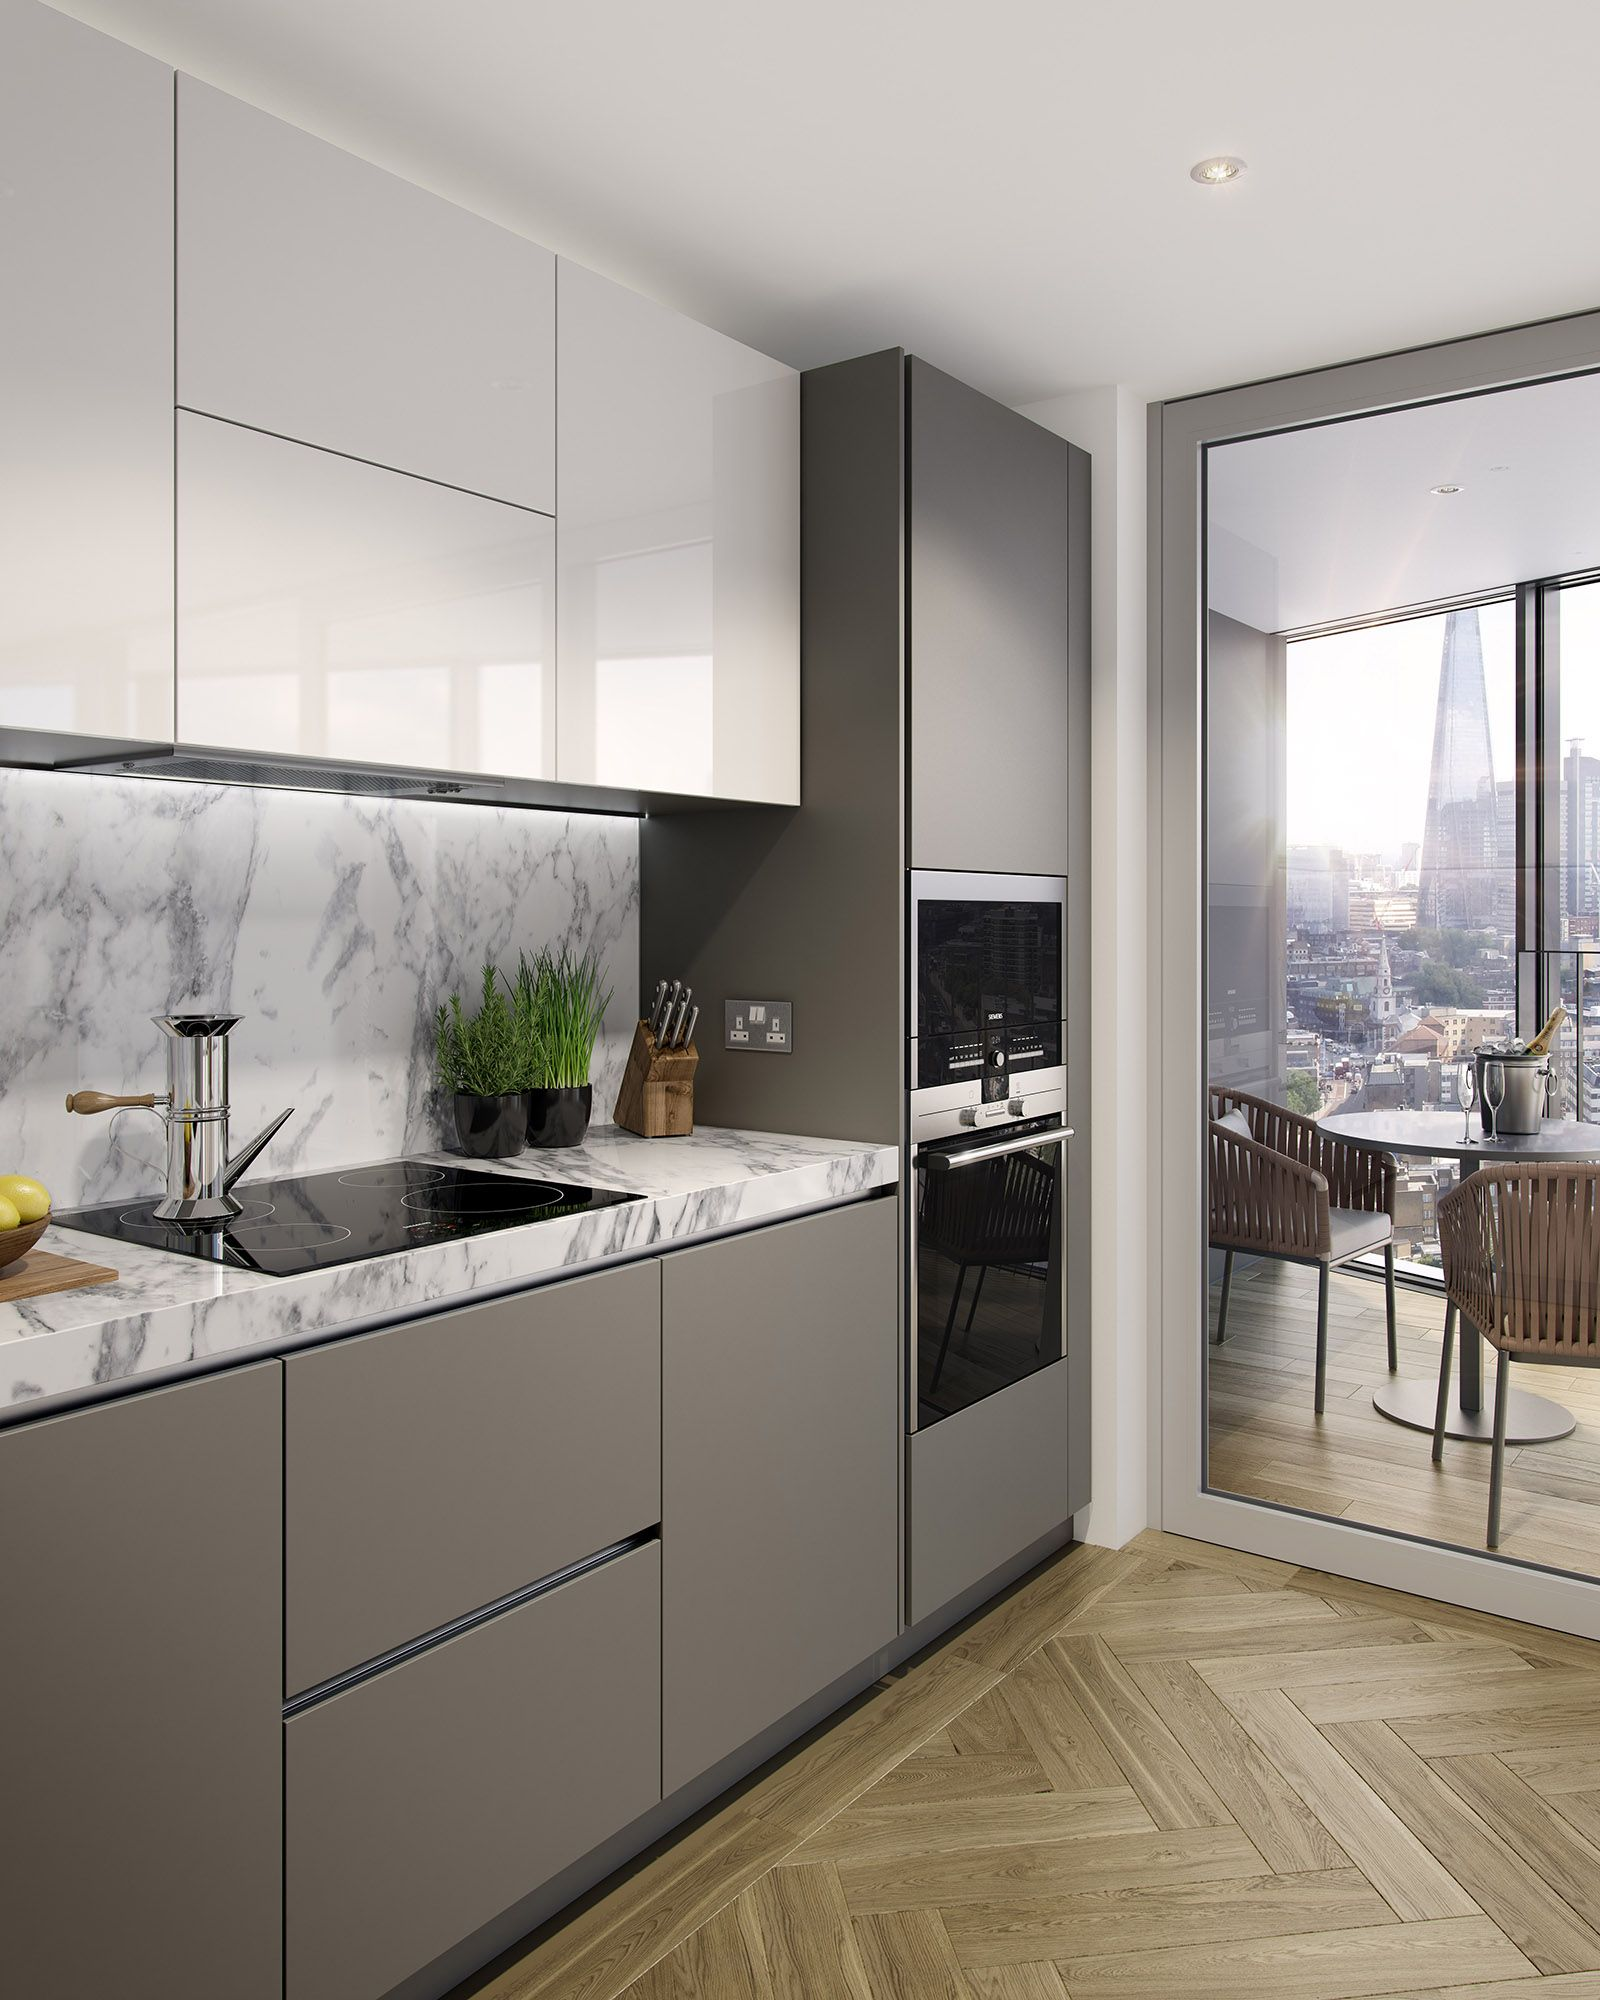 Arcmedia Two Fifty One Kitchen Cgi Architectural Visualisation Great Pin For Oahu Architectural Des Decoracao Cozinha Cozinhas Modernas Moveis Cozinha